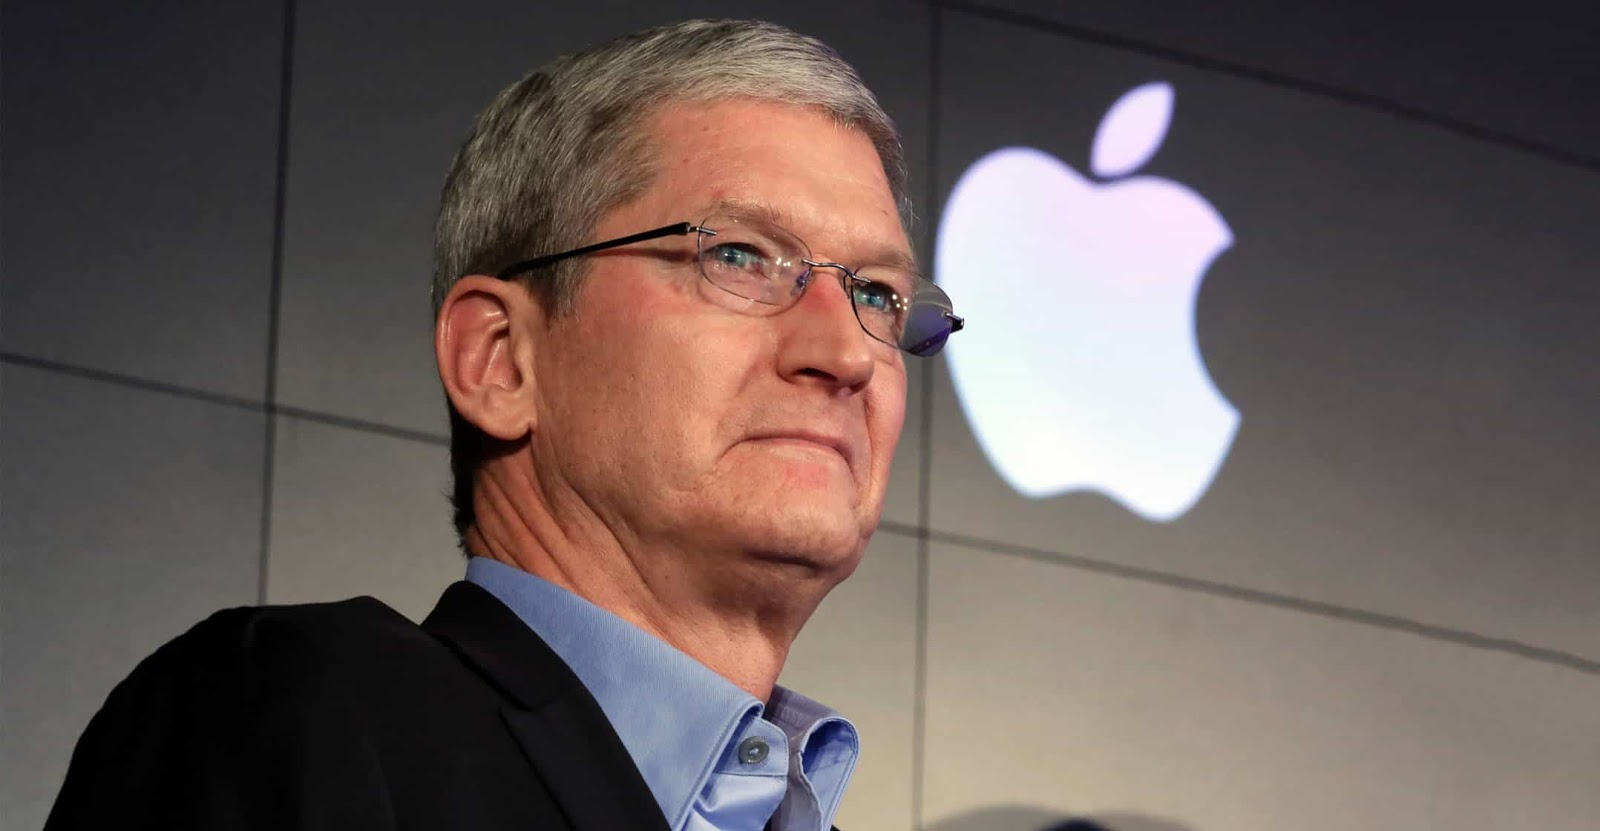 Tim Cook received options from Apple for 1 million shares of the company